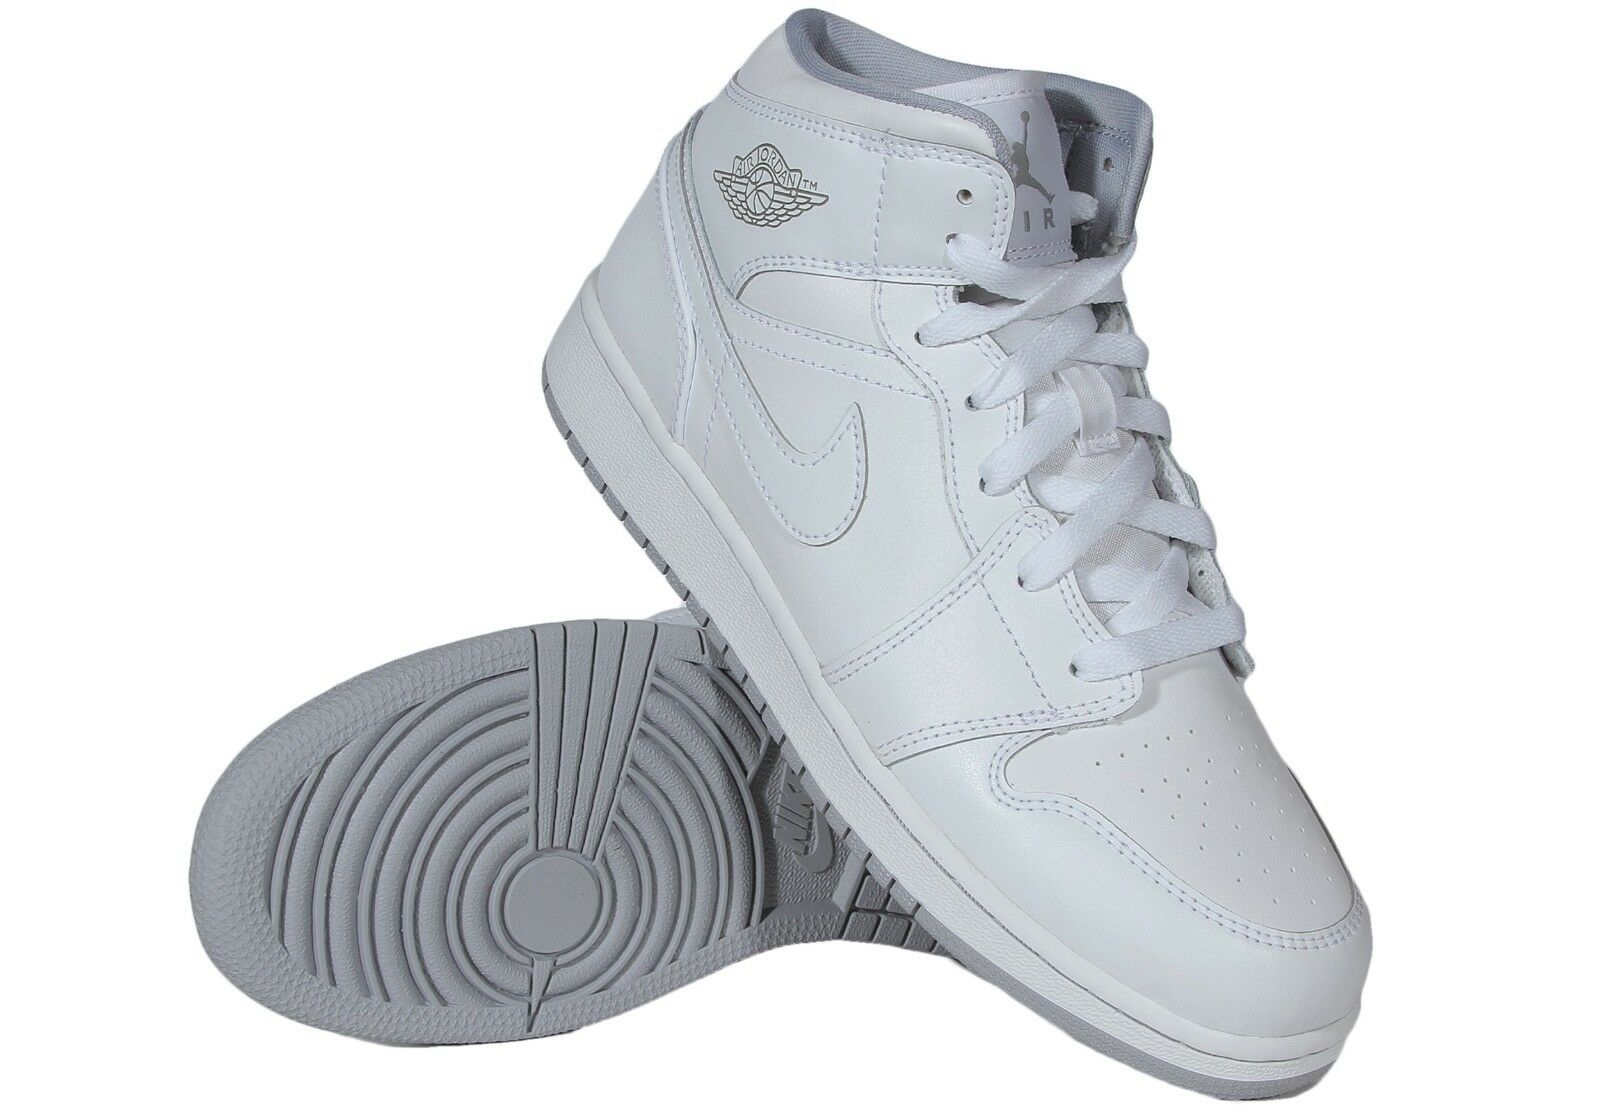 Air Jordan 1 Mid Men's Basketball Leather Shoes White Wolf Grey 554724-112 Comfortable and good-looking